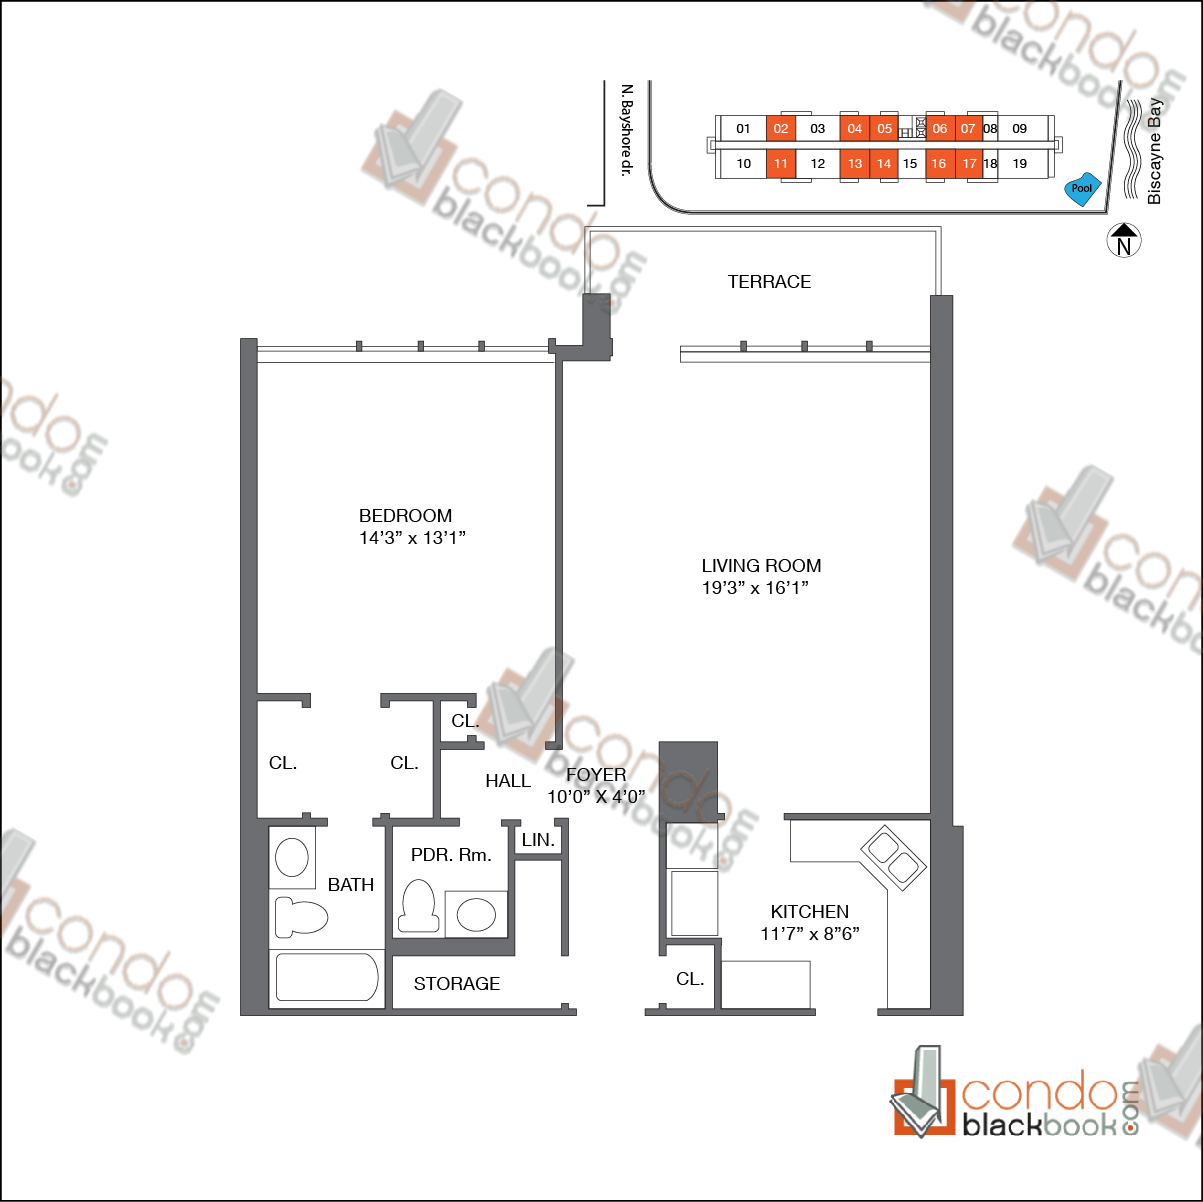 Floor plan for Biscayne 21 Edgewater Miami, model Unit B, line 02, 04, 05, 06, 07, 11, 13, 14, 16, 17, 1/1.5 bedrooms, 831 sq ft